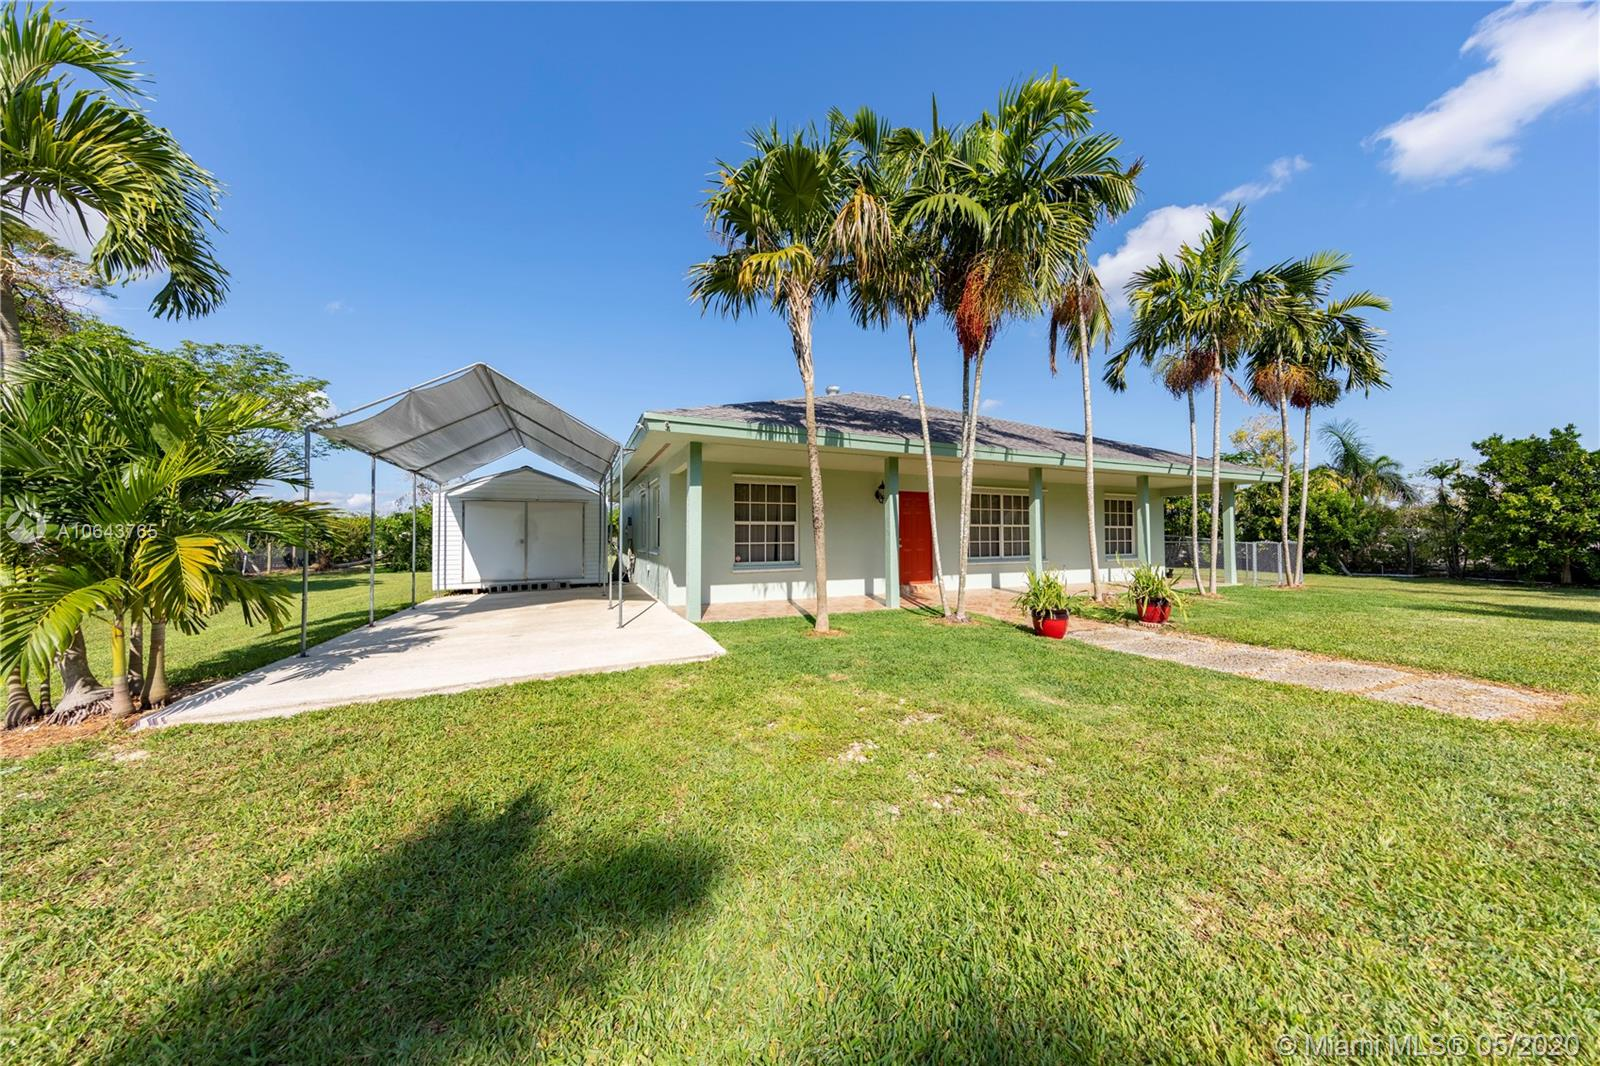 24840 SW 187th Ave, Homestead, FL 33031 - Homestead, FL real estate listing